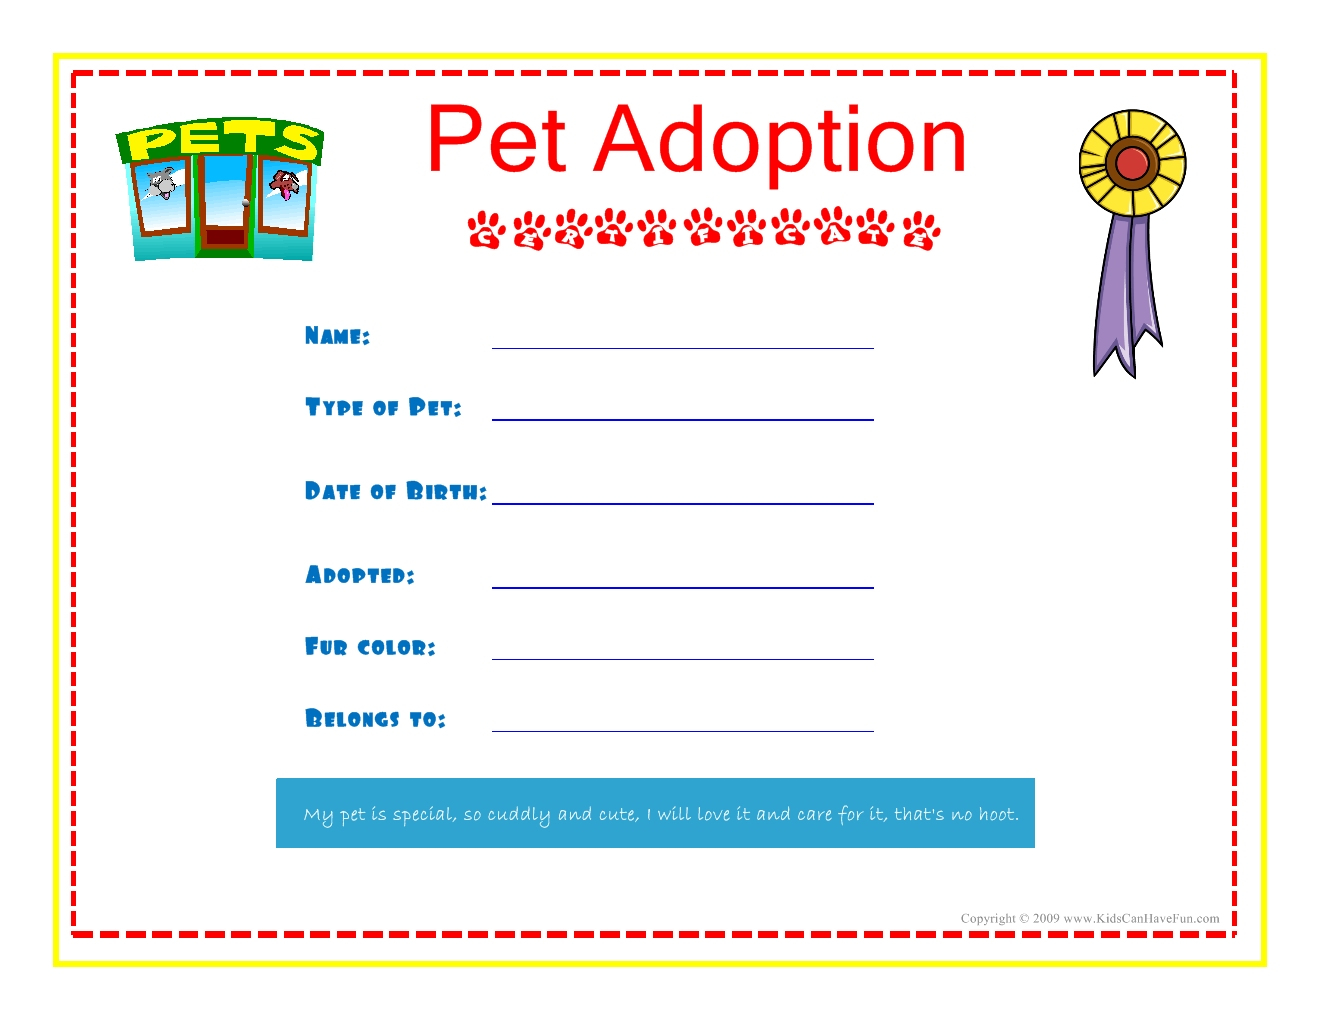 Adoption Certificate Template Fast Pet Adoption Certificate For The - Free Printable Stuffed Animal Adoption Certificate